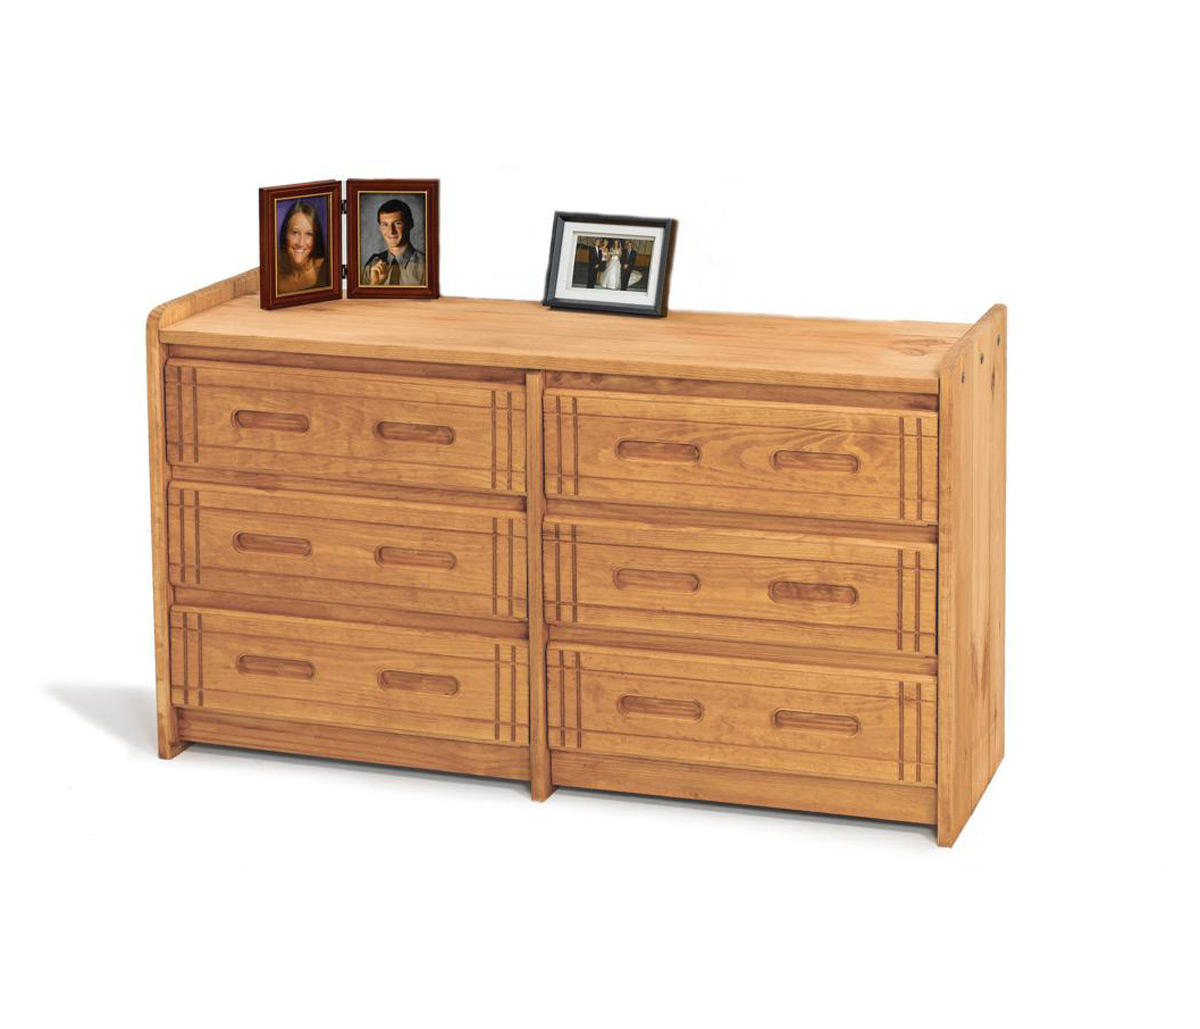 Chelsea Home 360066-W 6 Drawer Dresser - Honey